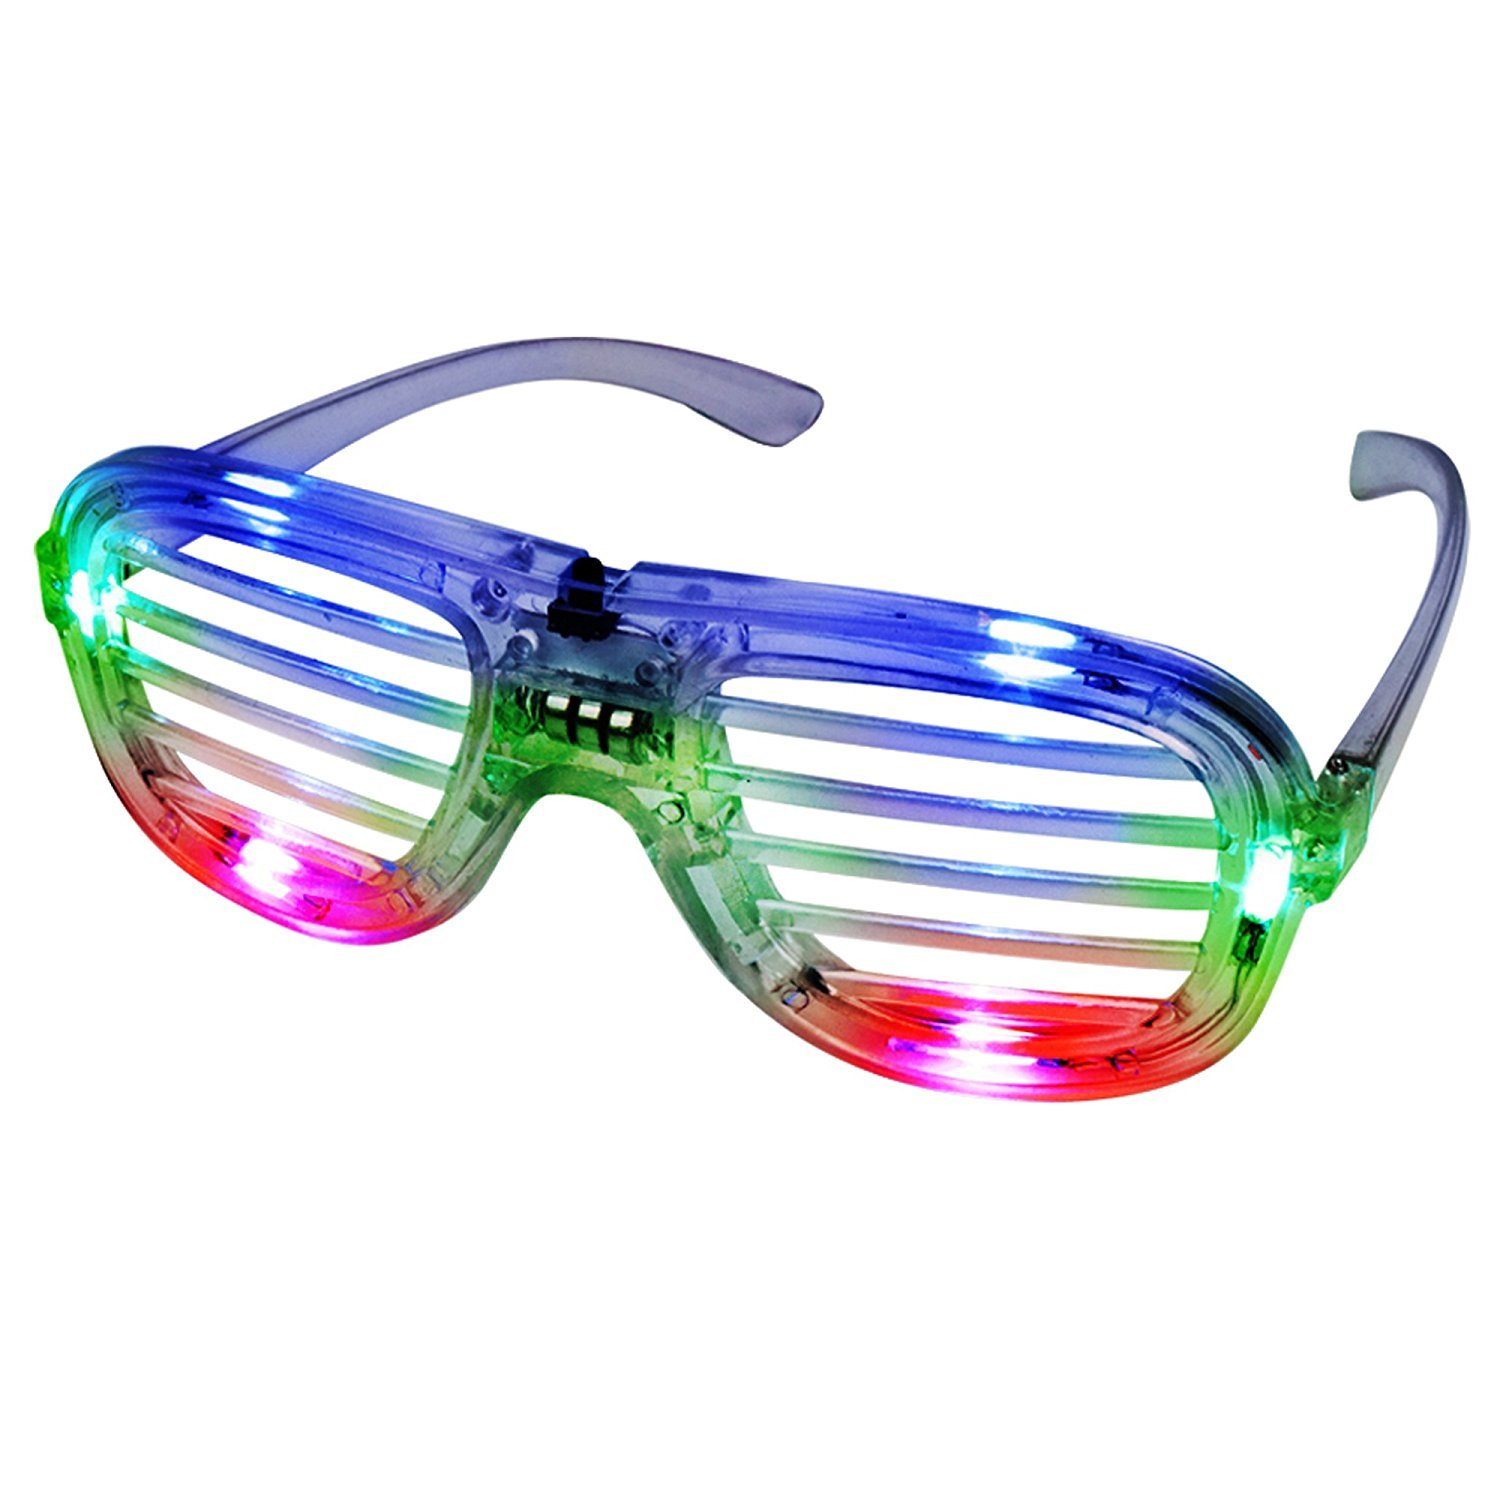 Fun Central I460 4 Packs Multicolor LED Light Up Slotted Shades LED Slotted Shades Glow in The Dark Slotted Shades Flashing Glasses Glow in The Dark Glasses LED Shutter Shades